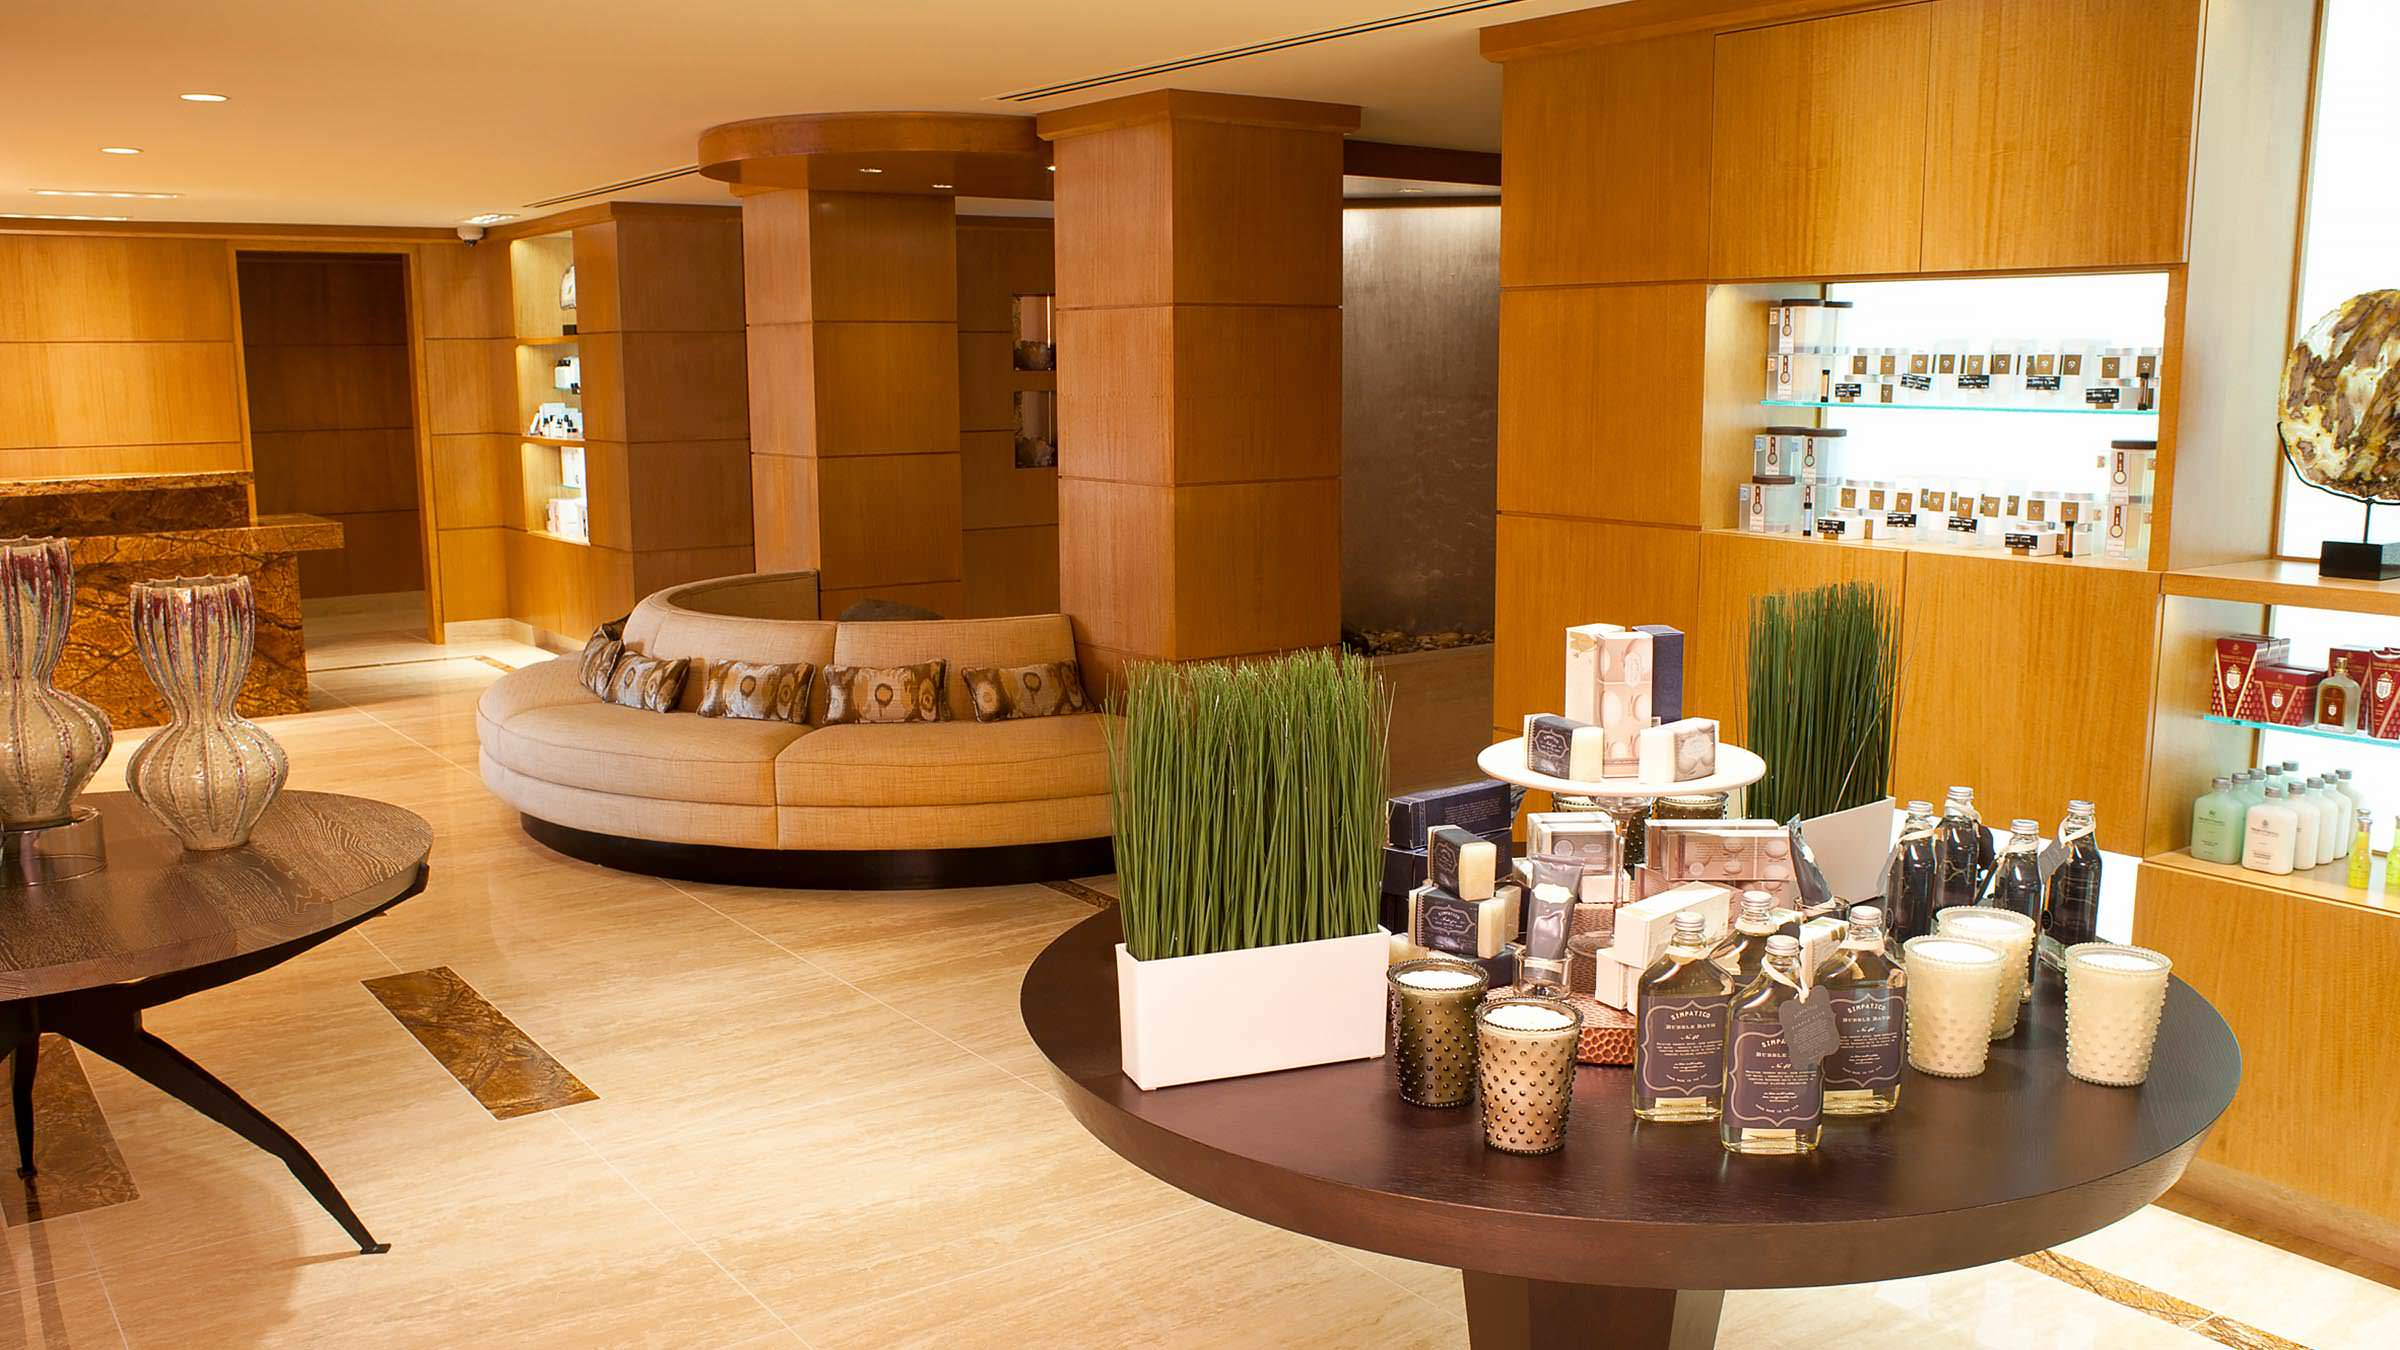 Grand Spa retail space with waiting area, water feature, and spa products.